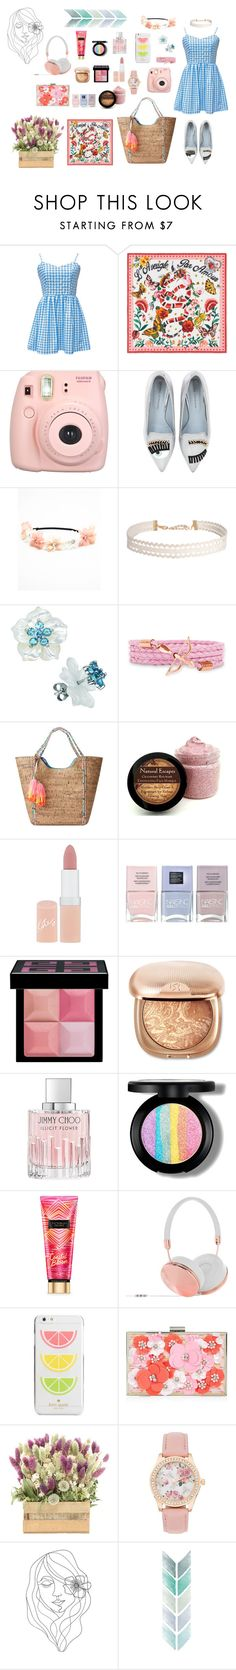 """""""I'm Happy To Be Me"""" by flowerdreams on Polyvore featuring Gucci, Fujifilm, Chiara Ferragni, Humble Chic, Lilly Pulitzer, Rimmel, Nails Inc., Givenchy, Jimmy Choo and Frends"""